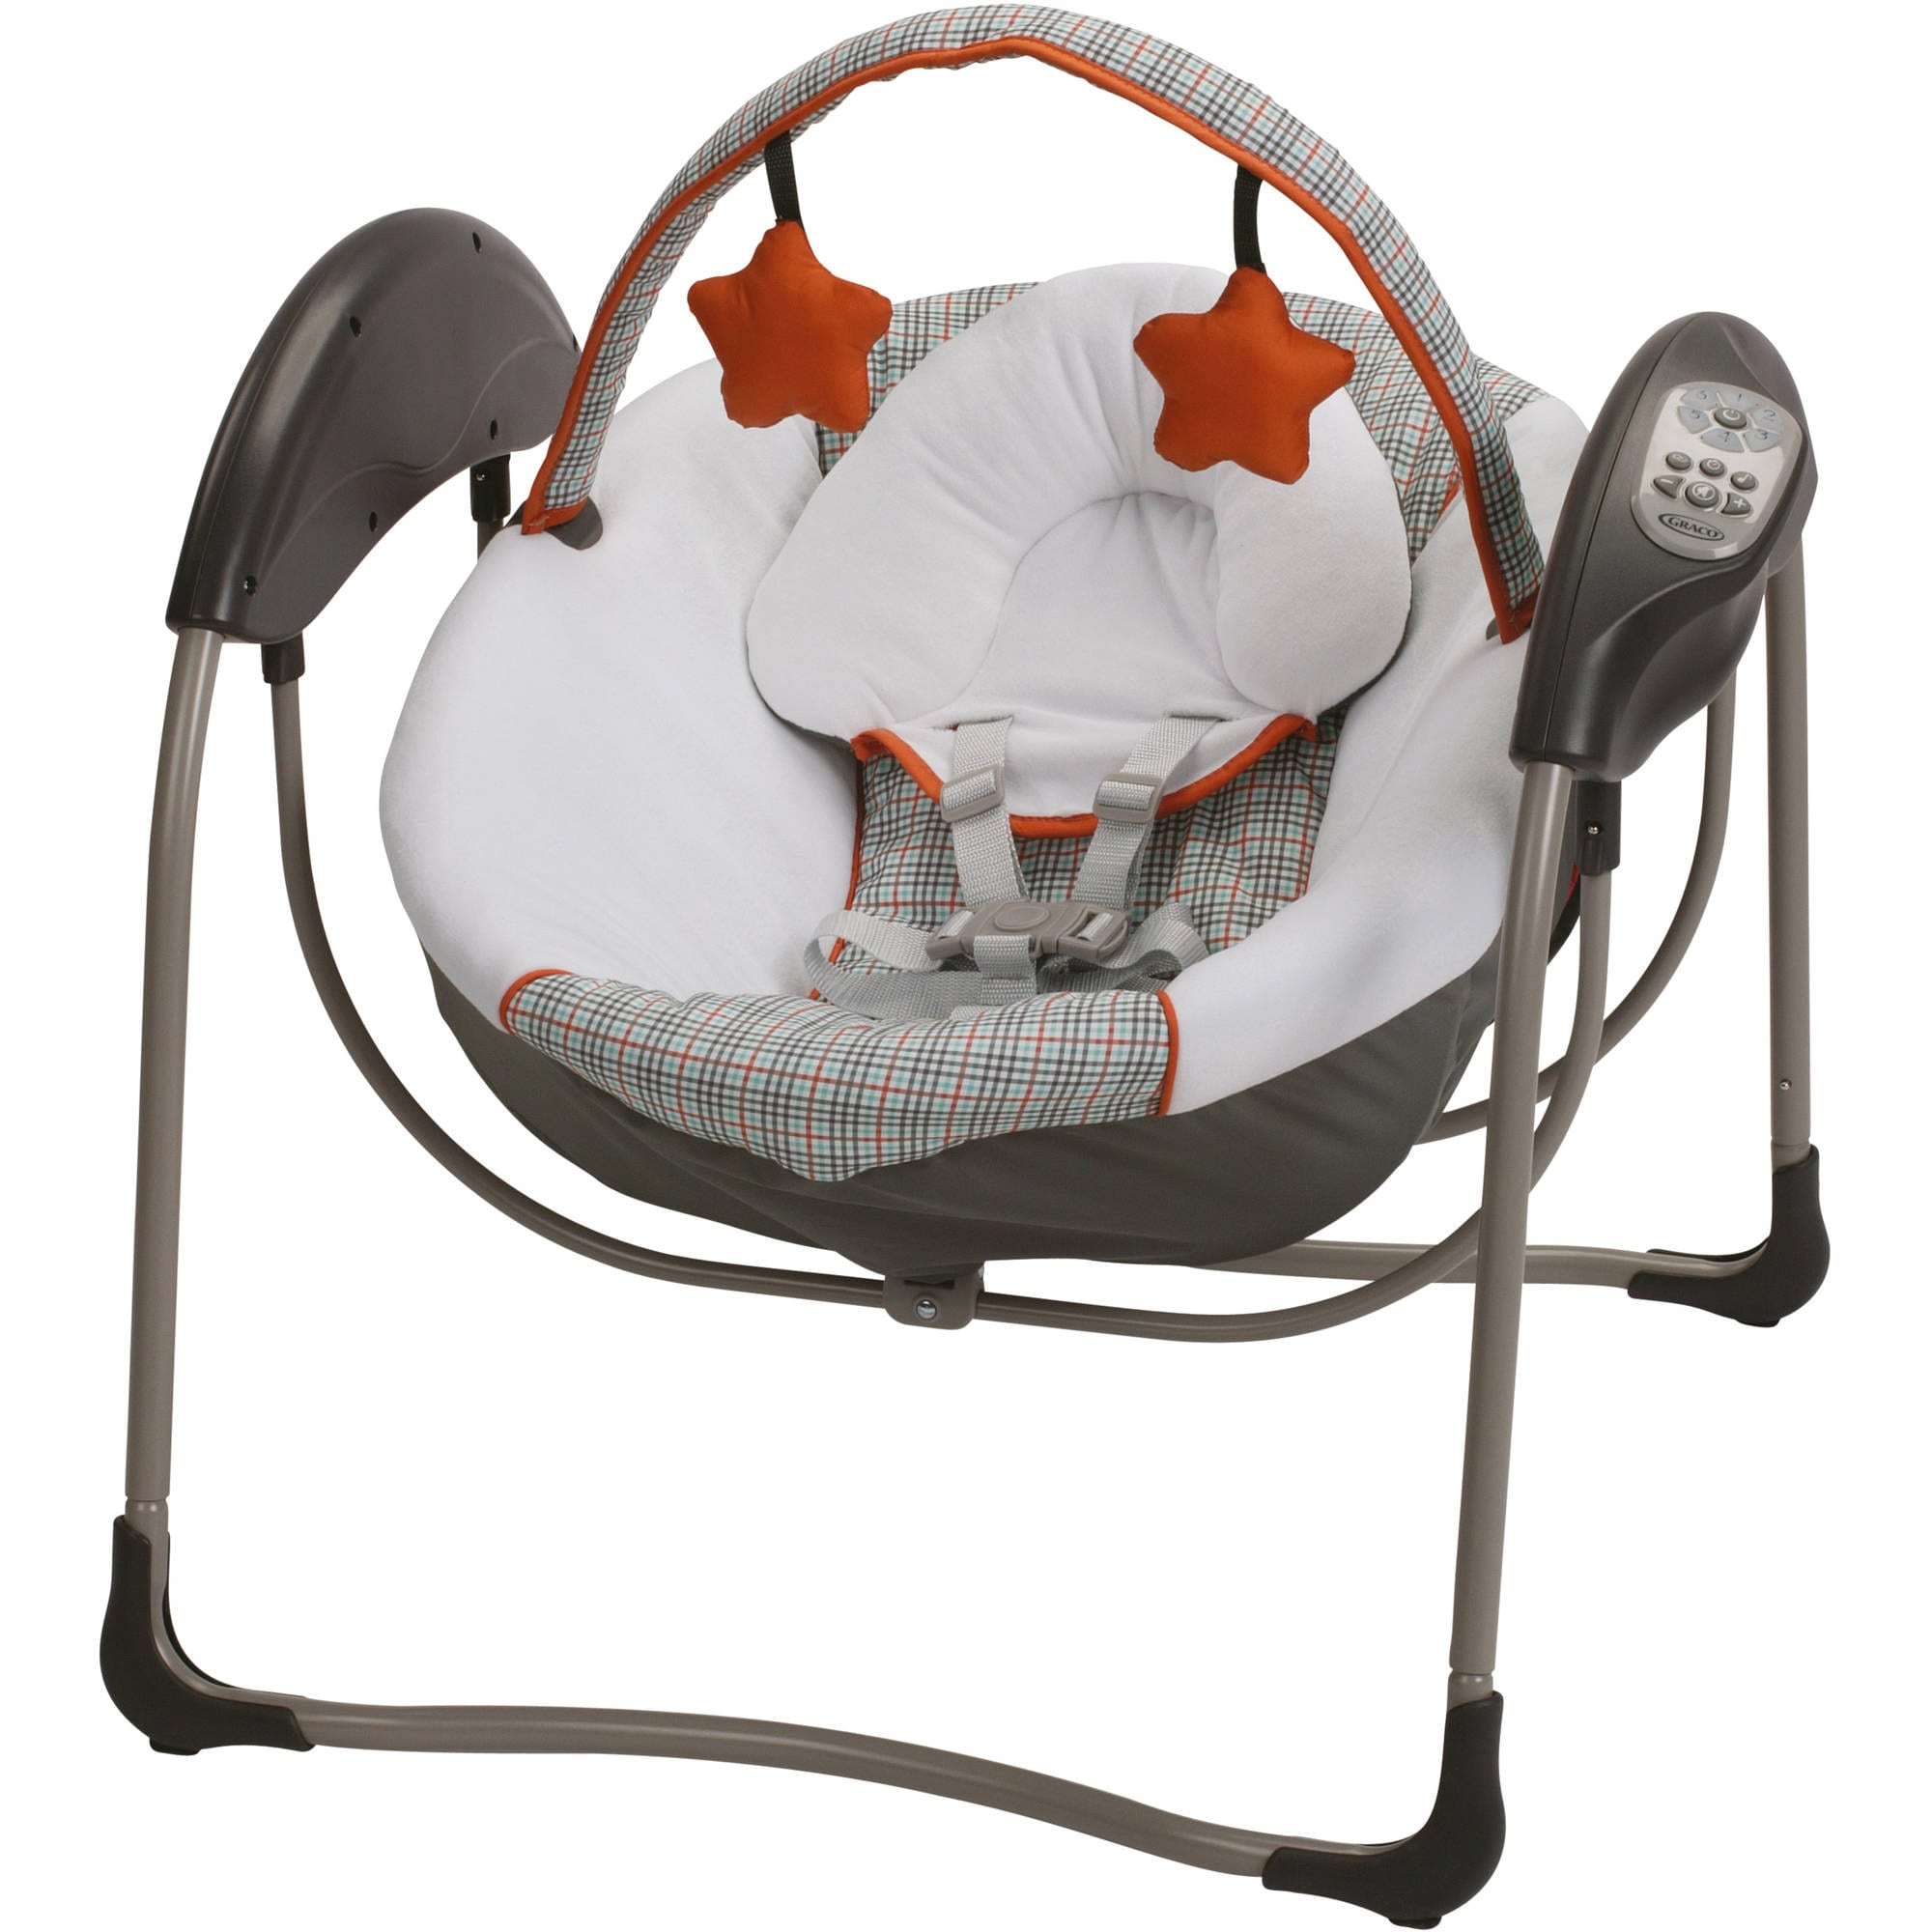 1a3fc11b8340 Baby Bouncer